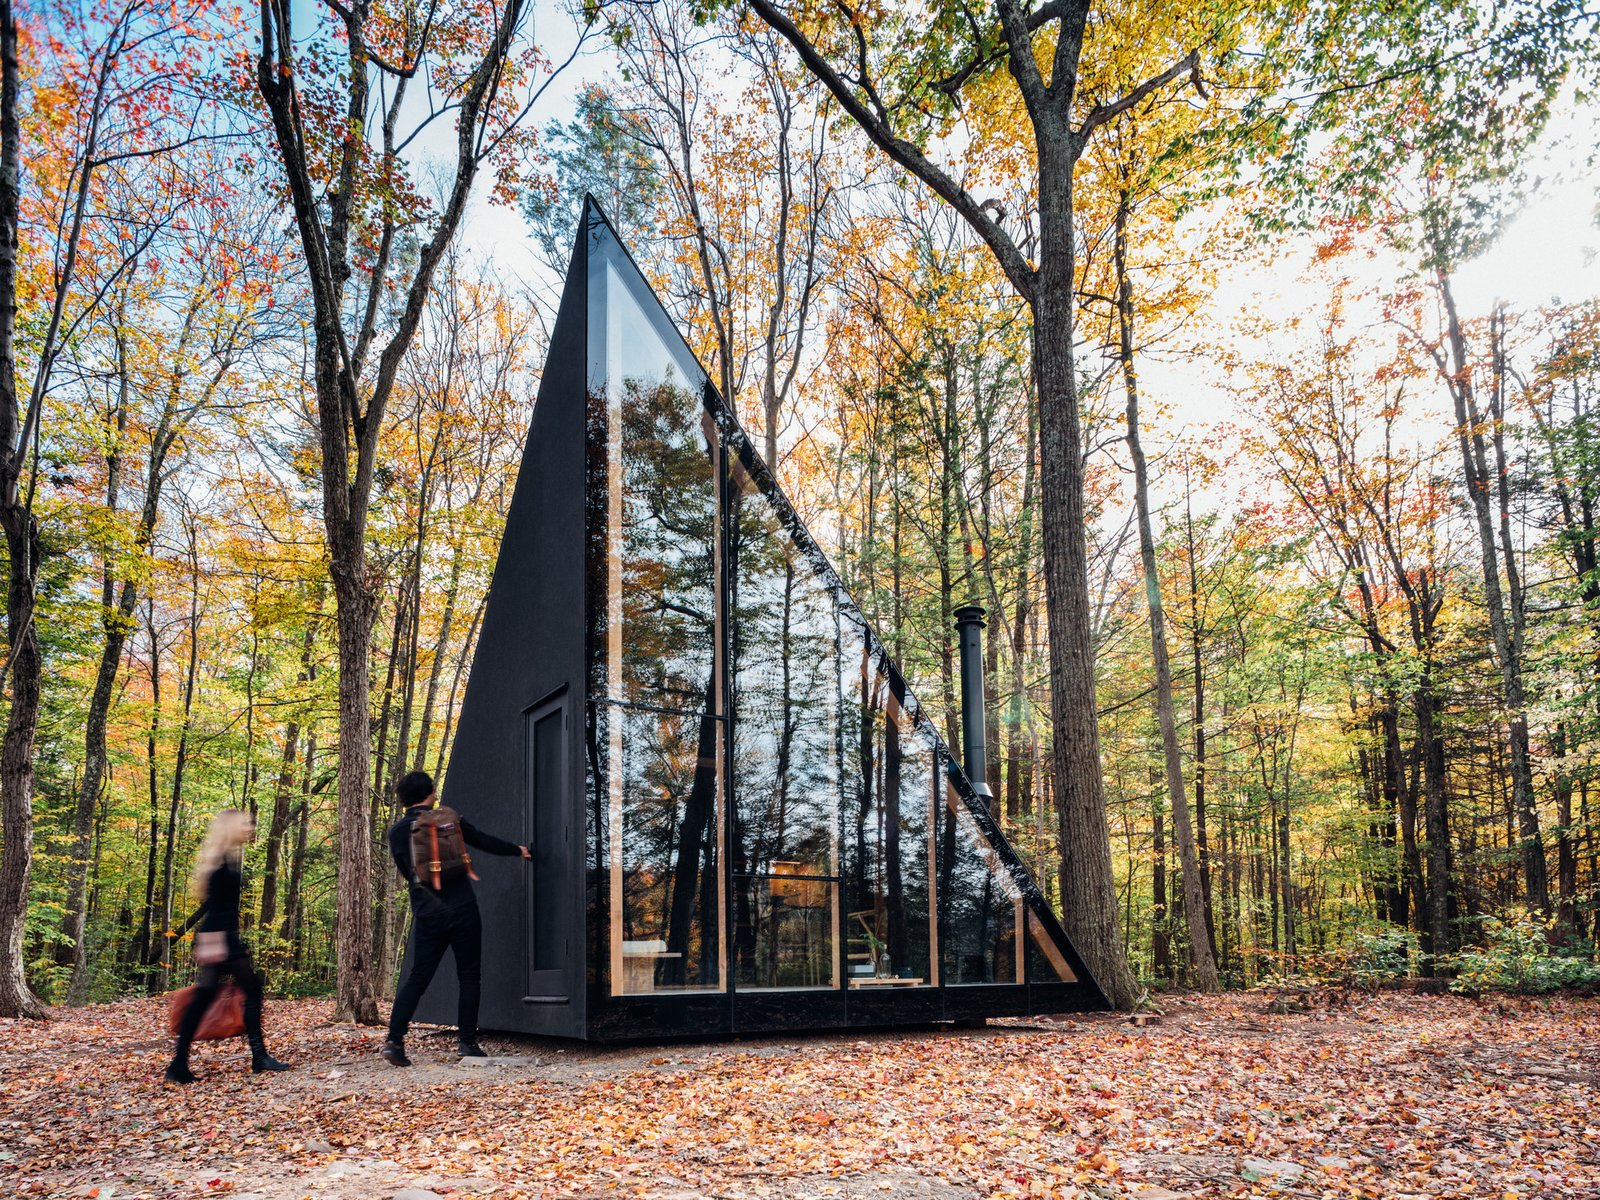 Exterior, Tiny Home, Glass, Wood, and A-Frame Measuring only 180 square feet, this sleek, prefabricated, off-grid tiny home rotates the classic A-frame cabin structure by 45 degrees to create more usable floor space. Sited in Hudson Valley, the sleek, black cabin by BIG and prefab housing startup Klein is the first model in a series of tiny homes that Klein plans to sell directly to consumers.  Exterior A-Frame Tiny Home Wood Photos from The 11 Most Influential Buildings of 2018